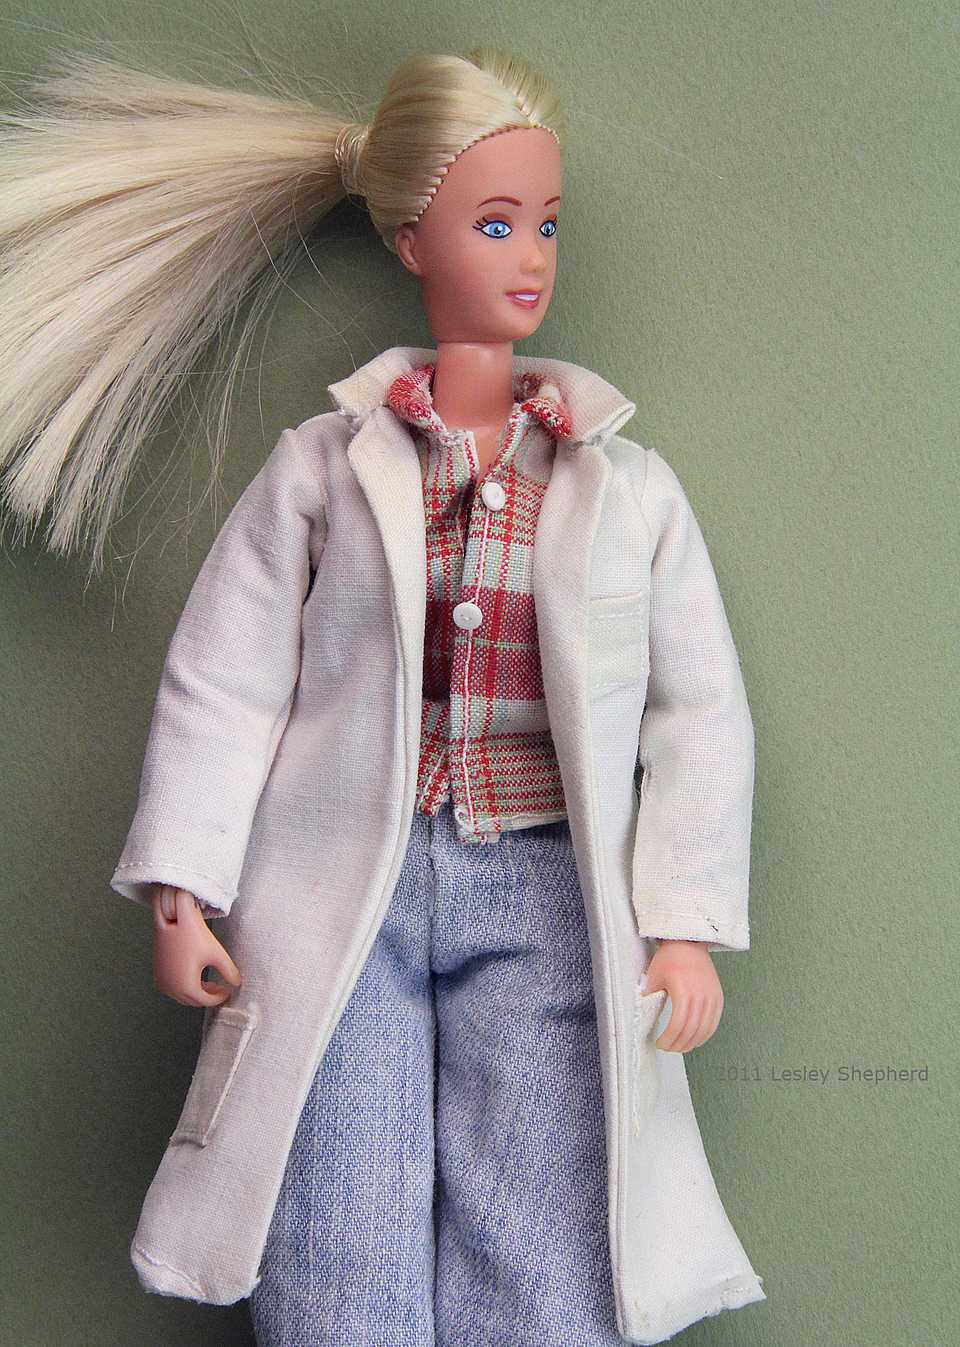 Lab coat for a doll